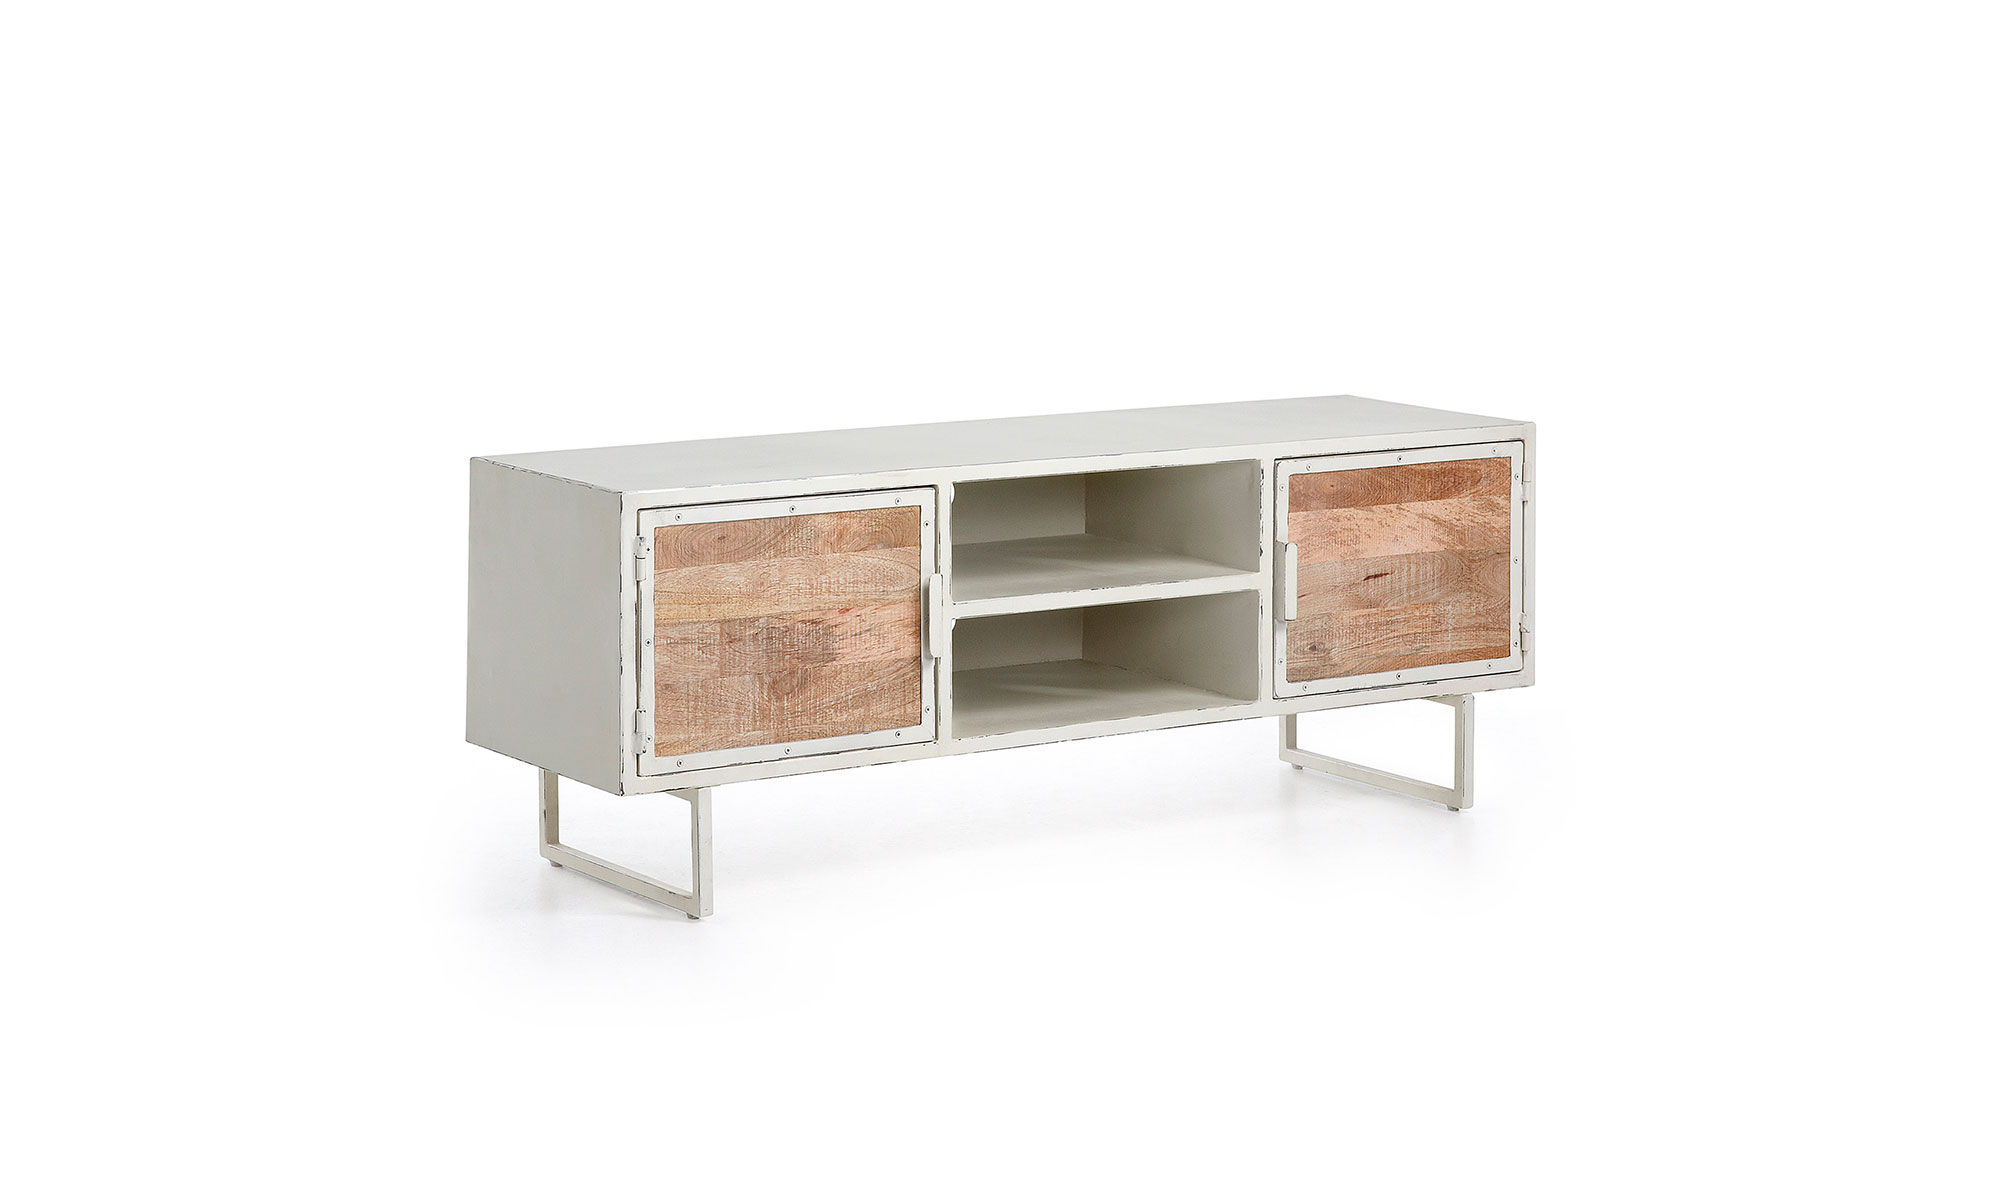 Mueble tv industrial loops en - Portobello muebles madrid ...